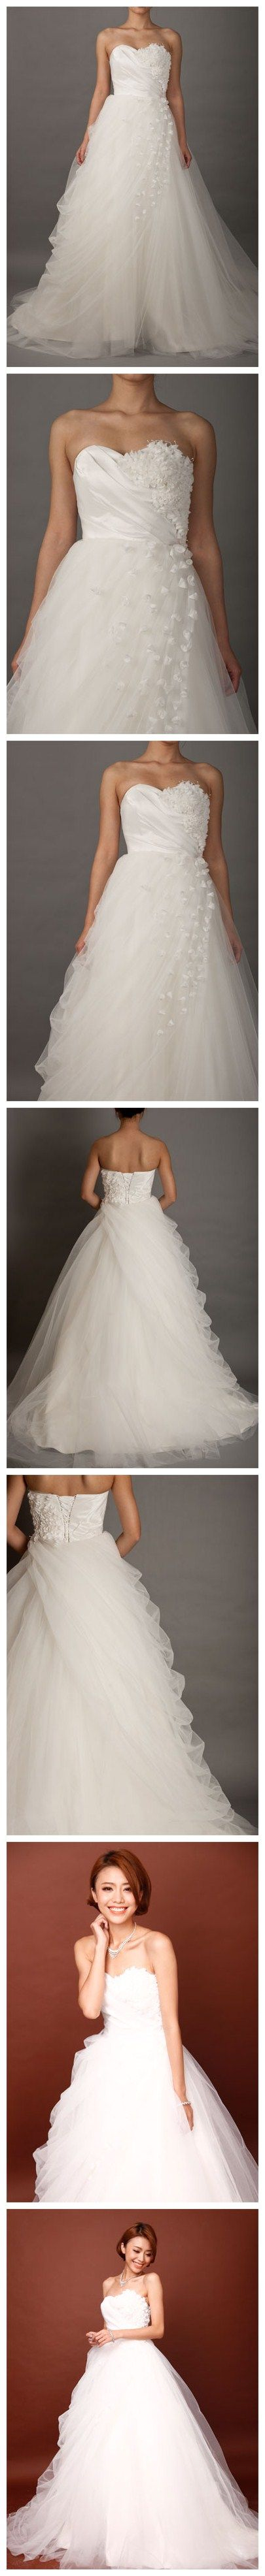 Sweetheart Romantic Wedding Dress with Slanting Flowered Flaps | See more about